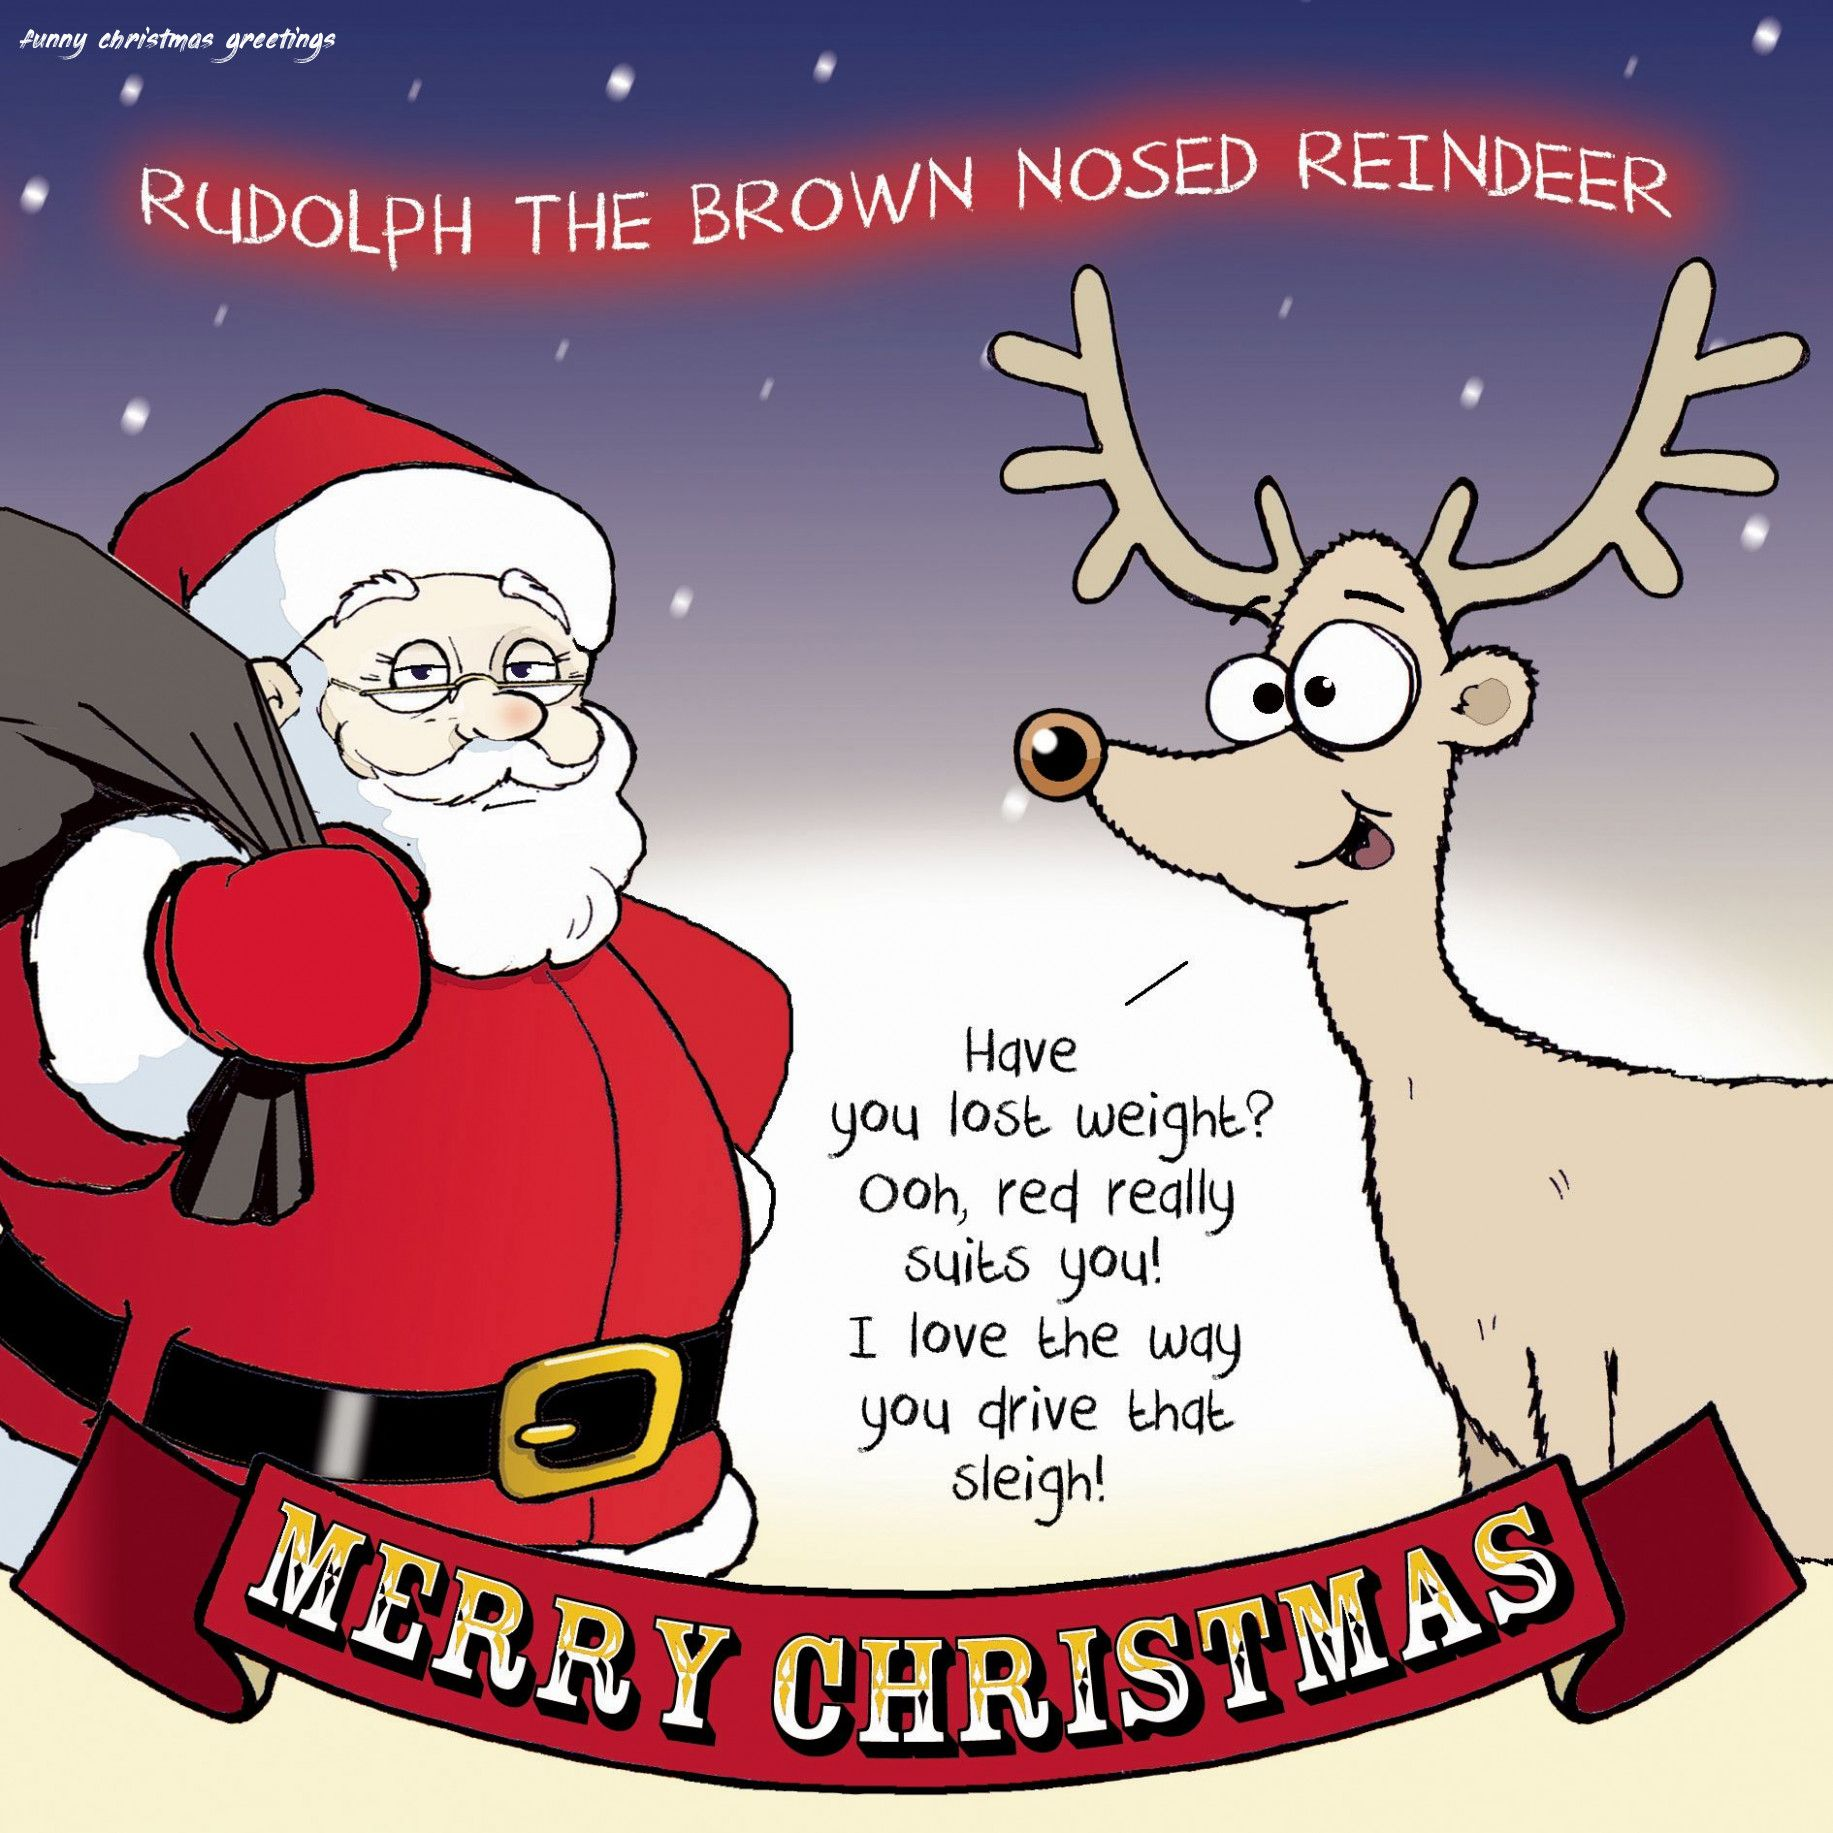 8 Funny Christmas Greetings in 2020 Christmas quotes